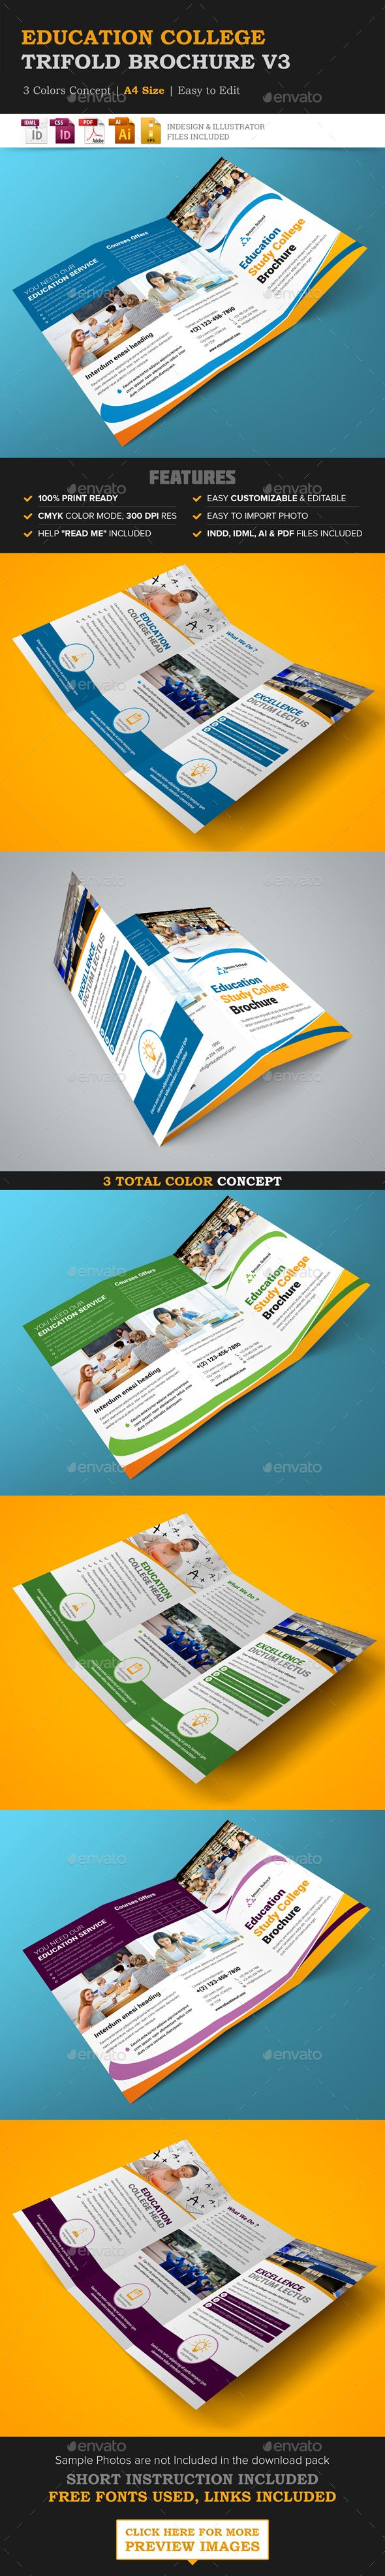 Education College Trifold Brochure v3 | Brochures, College and ...